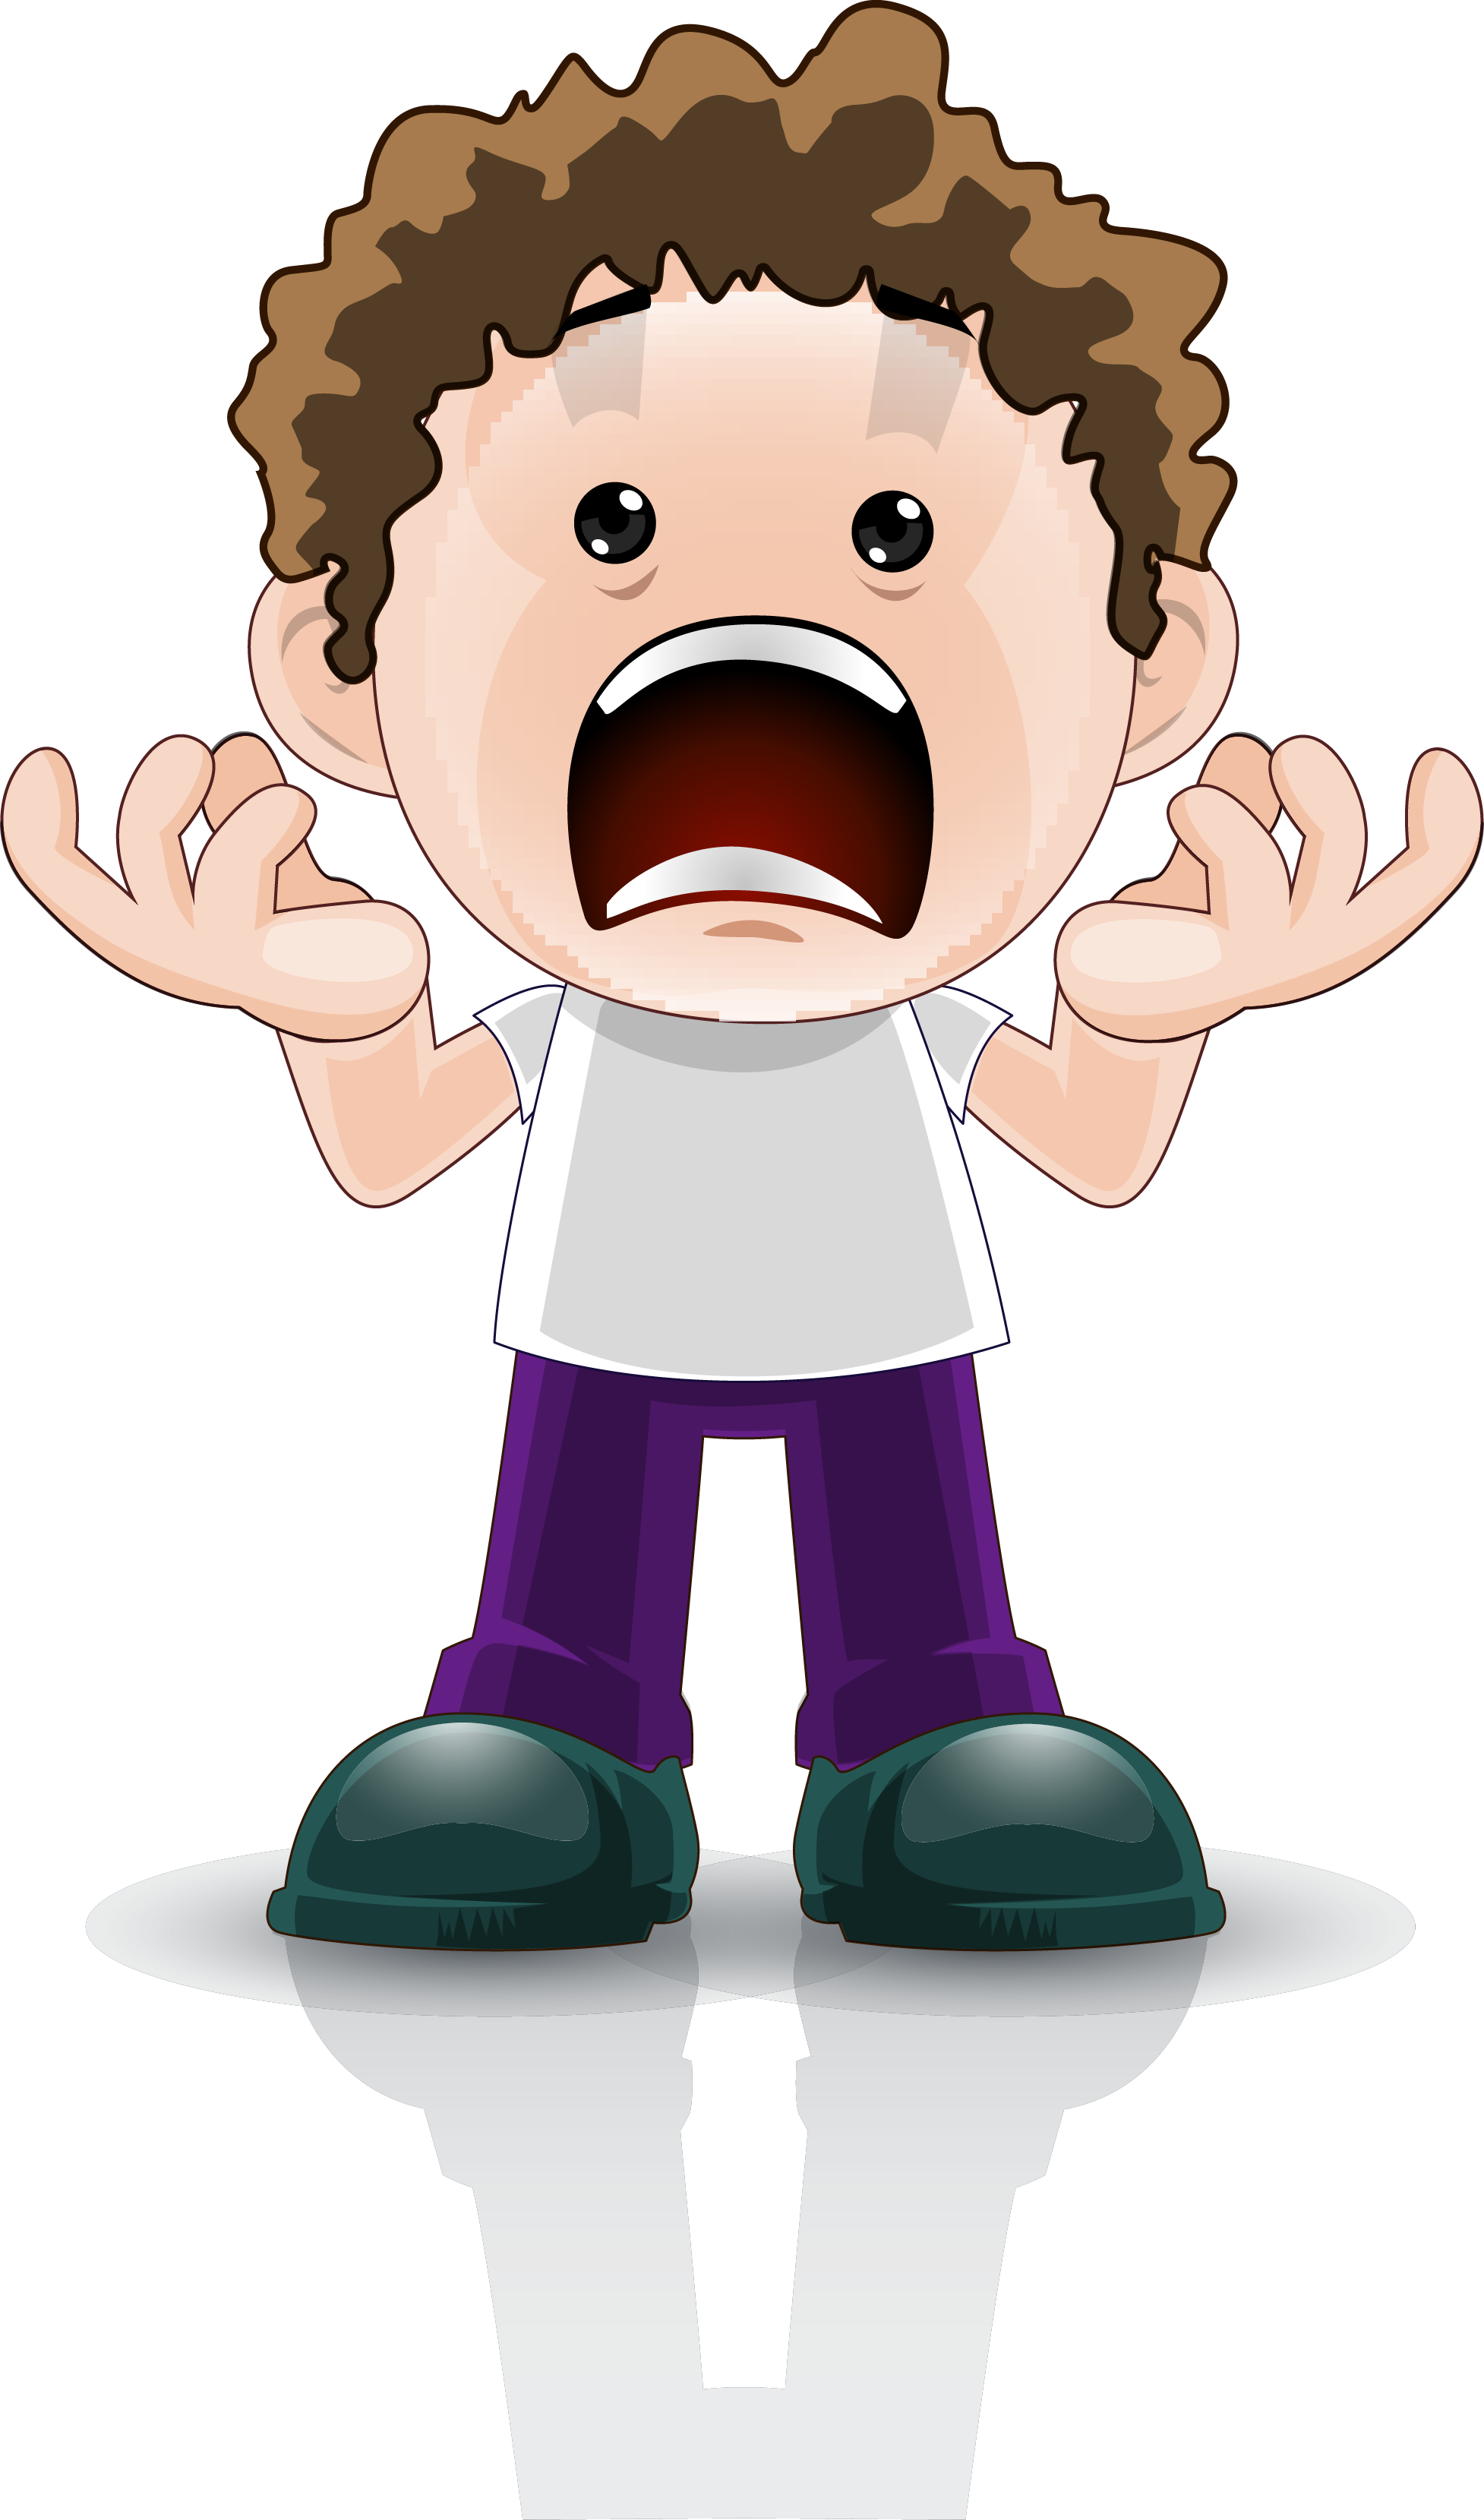 Surprise clipart shock. Cartoon boy facial expression